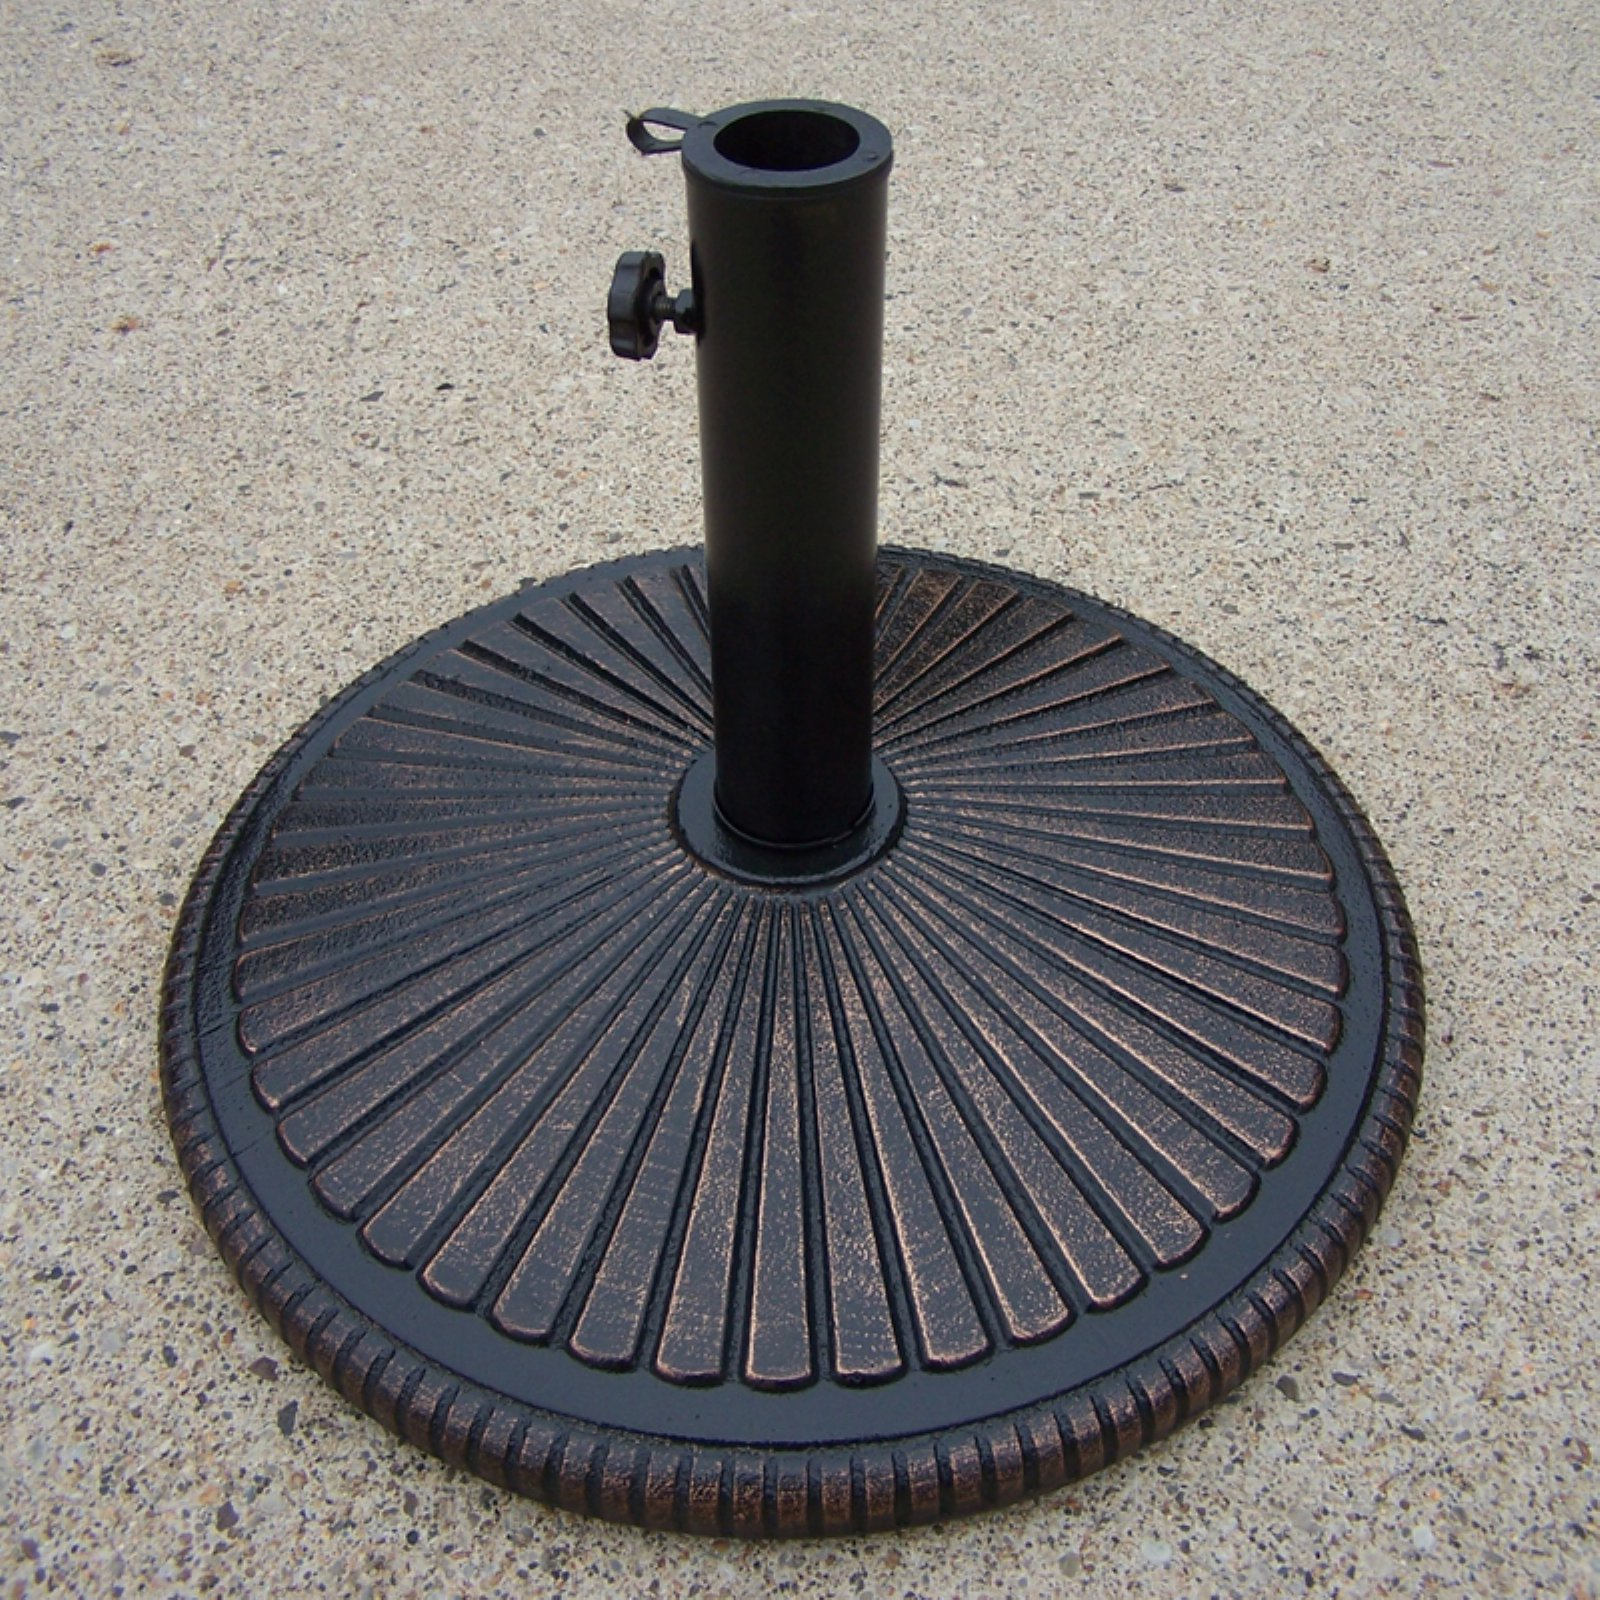 Oakland Living Center Burst Heavy Duty Cast Iron Multiuse Umbrella Stand by Oakland Living